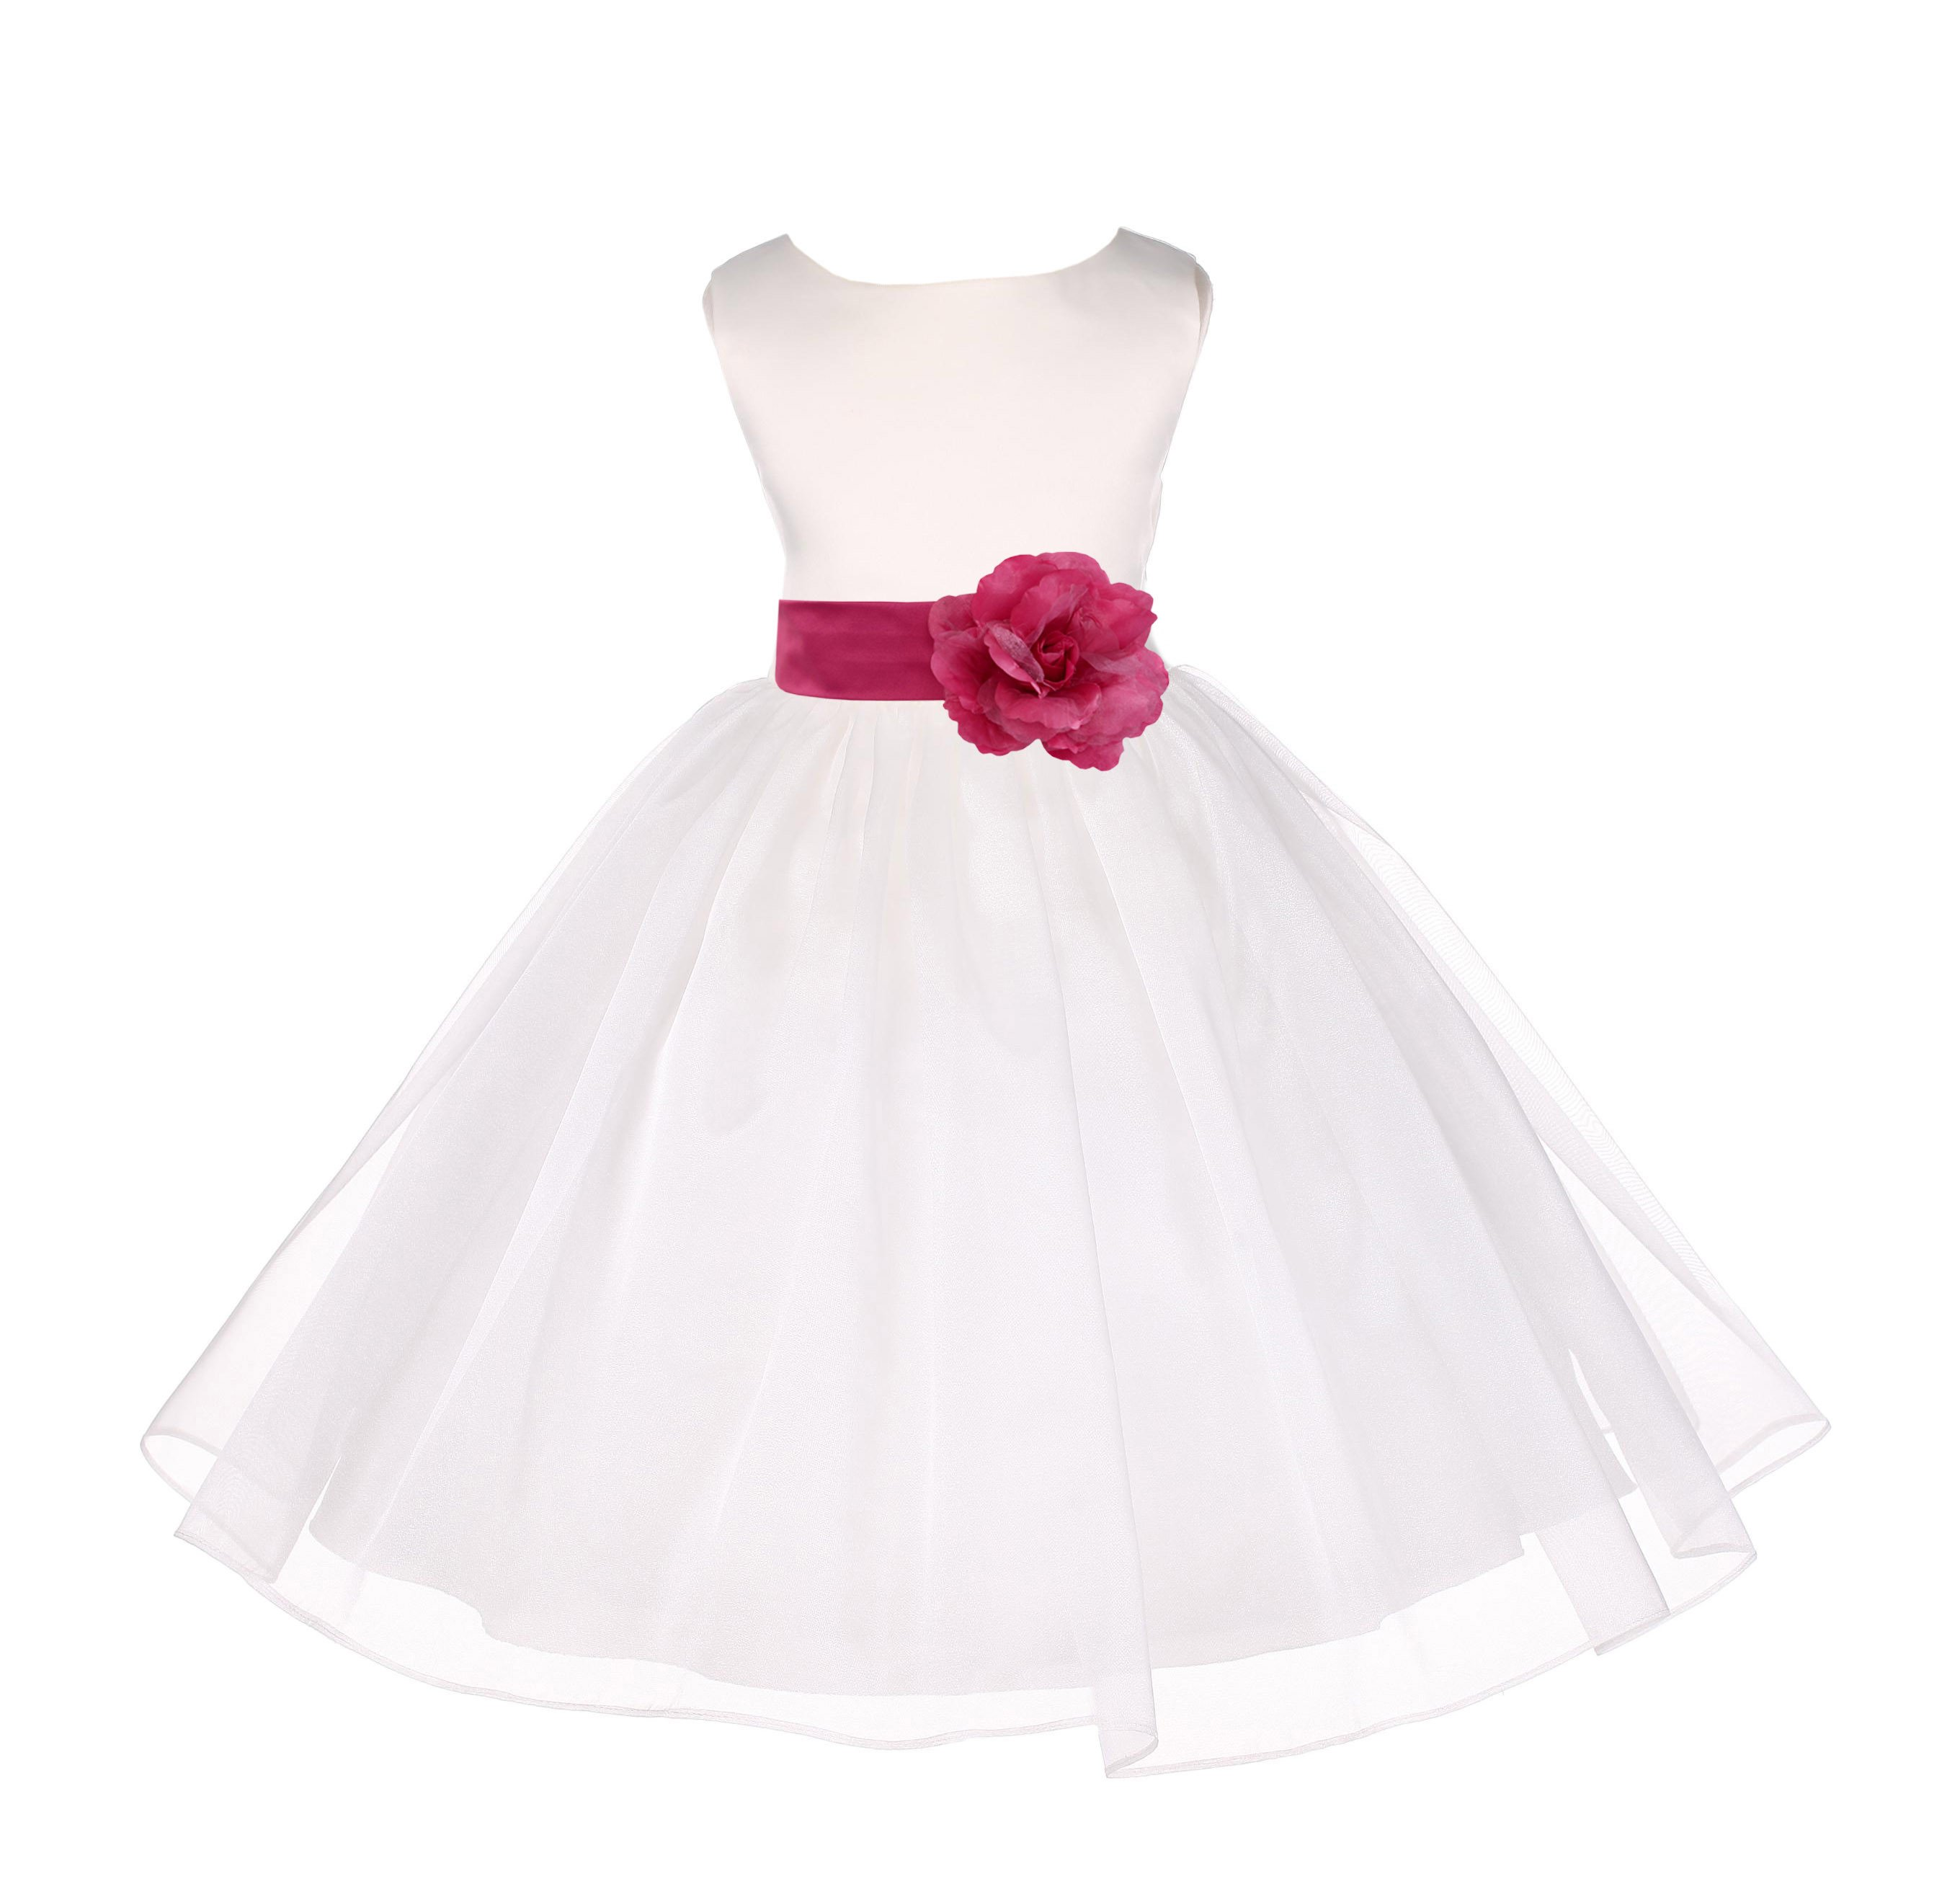 Ivory Organza Flower Girl Dress Receptions Wedding Bridal Beauty Pageant Special Occasions 841T